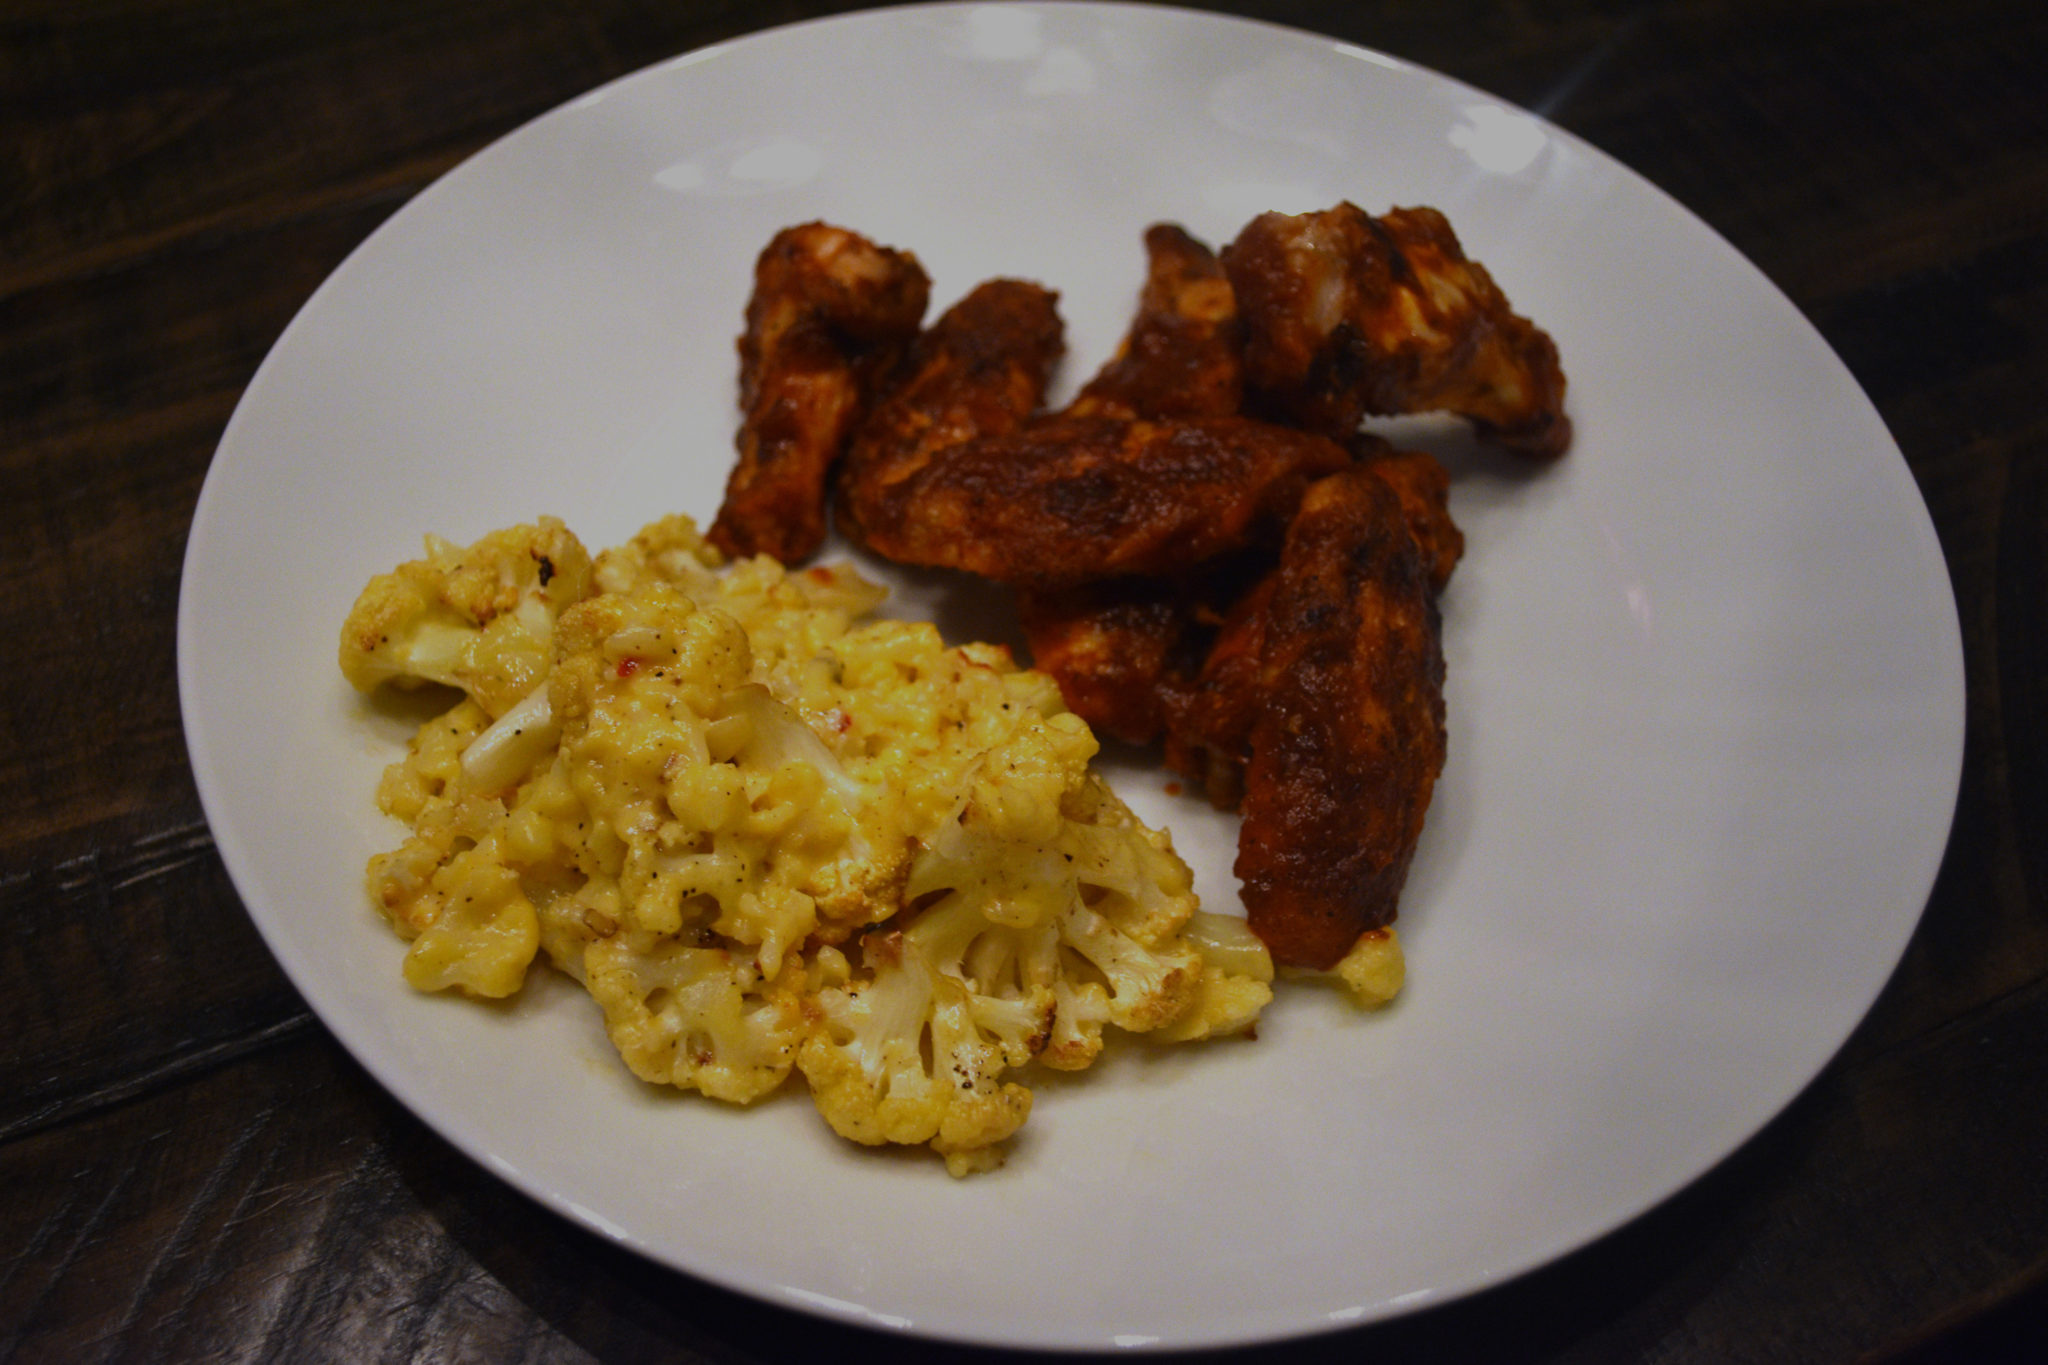 Gluten-Free Spicy BBQ Wings and Cauliflower Mac (n Cheese)